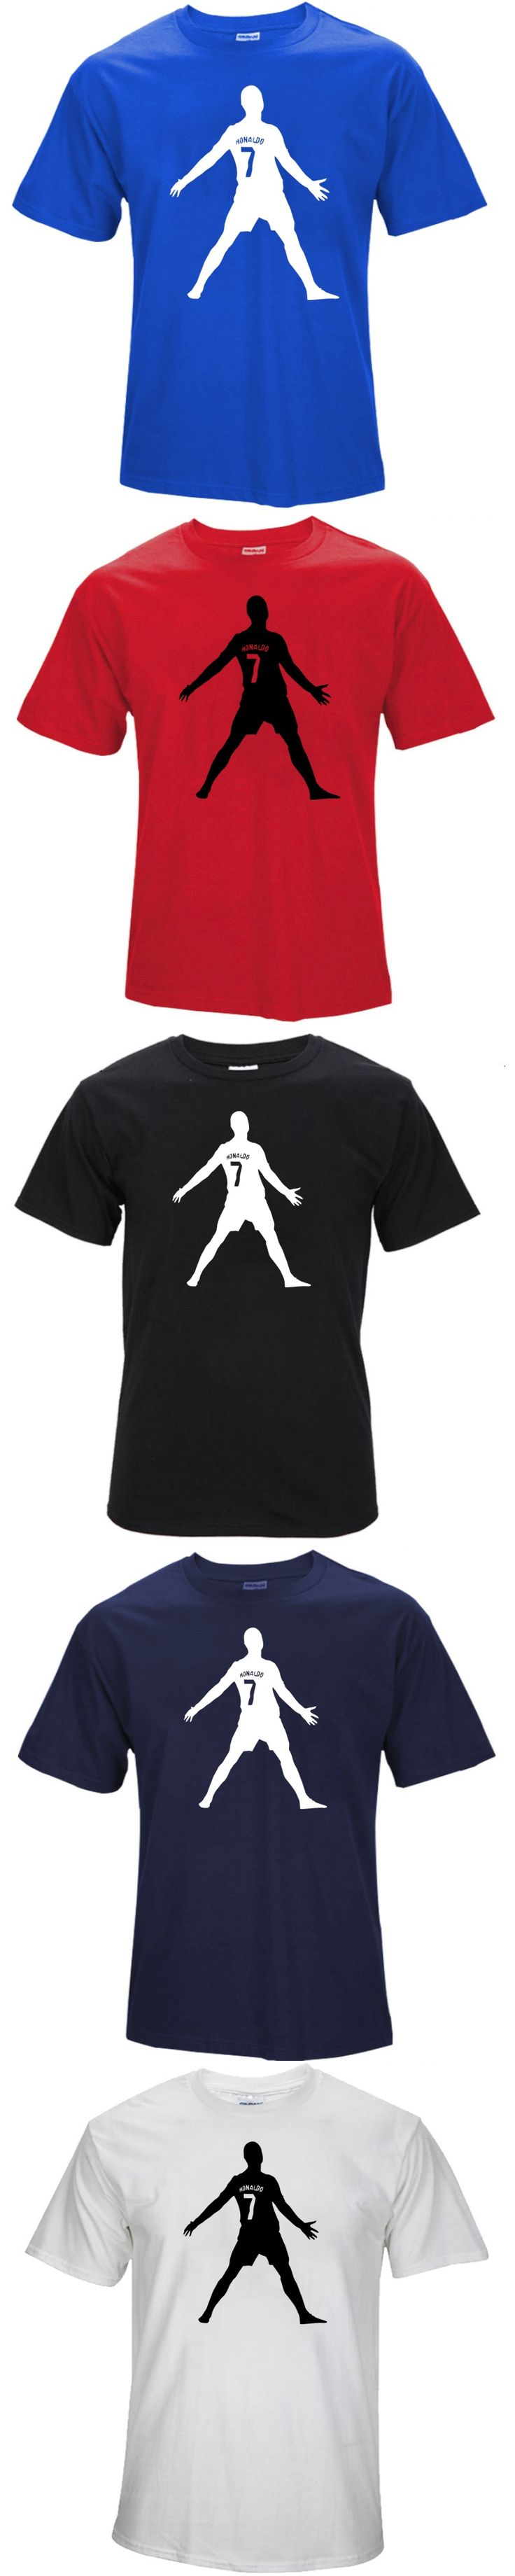 2017 summer C Lo Number 7 Free ball silhouette T shirt Real Madrid Cotton madred  T-shirt M172